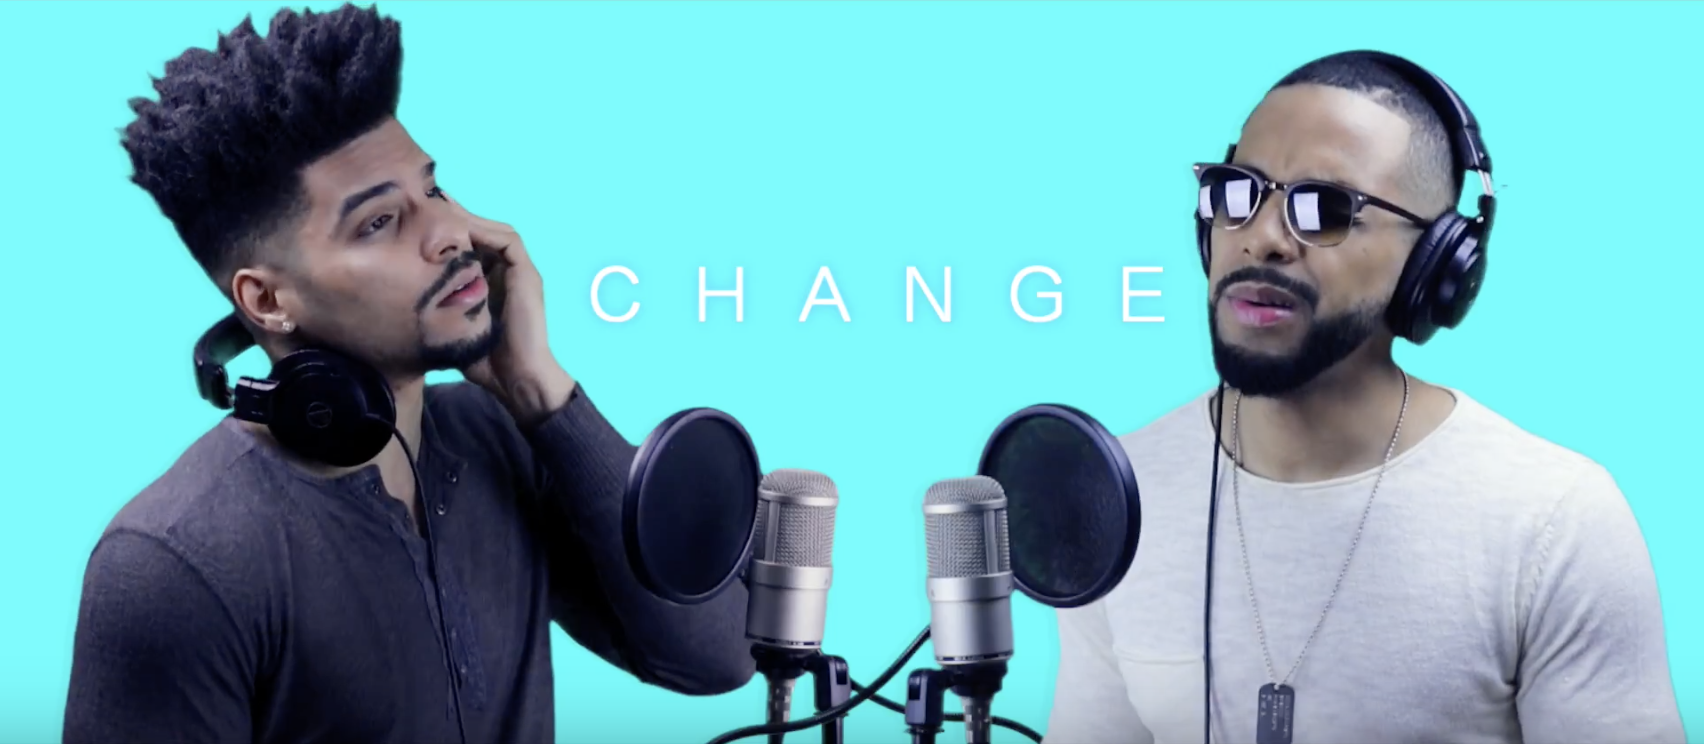 Charlie Puth - Change (SOLERO Official Cover)